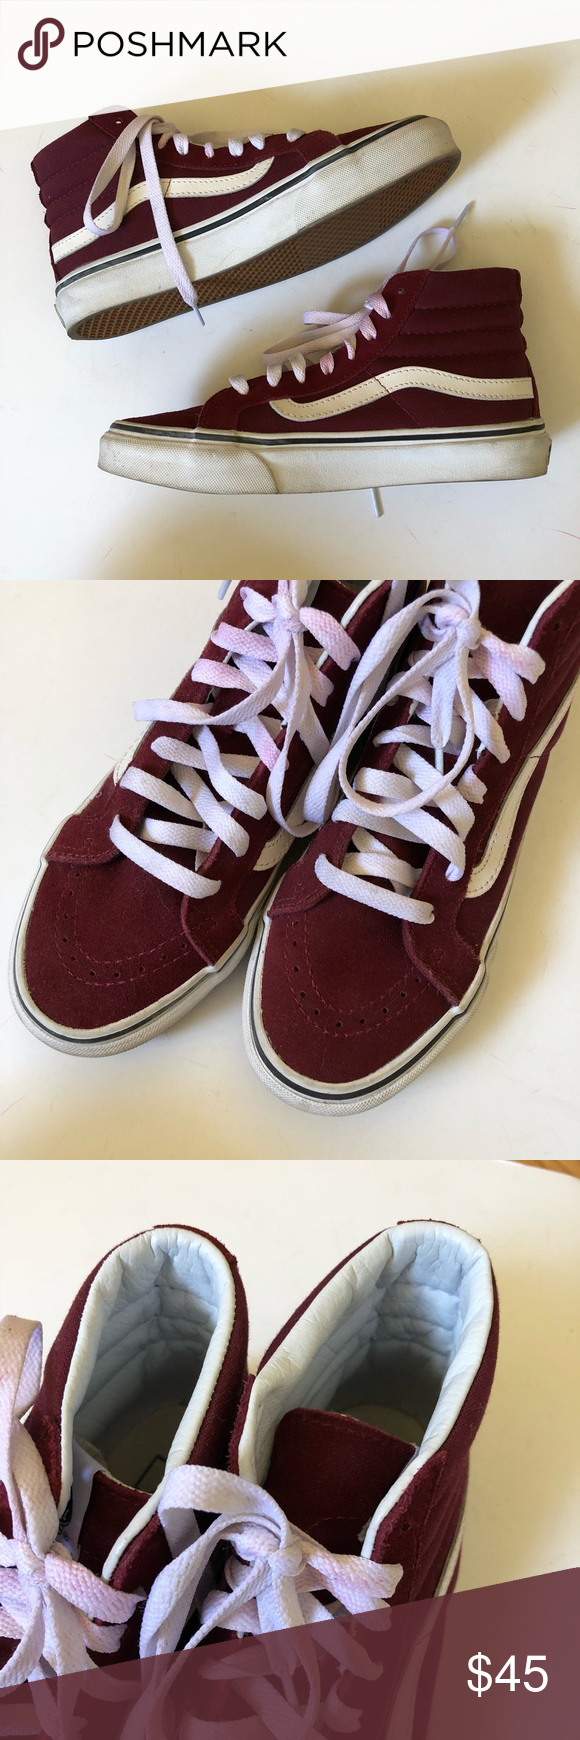 87514e1f9a Vans Sk8 Hi-Slim in Burgundy Worn twice! In excellent condition. Canvas and  suede combo. The dye from the suede has transferred onto the laces but thy  can ...